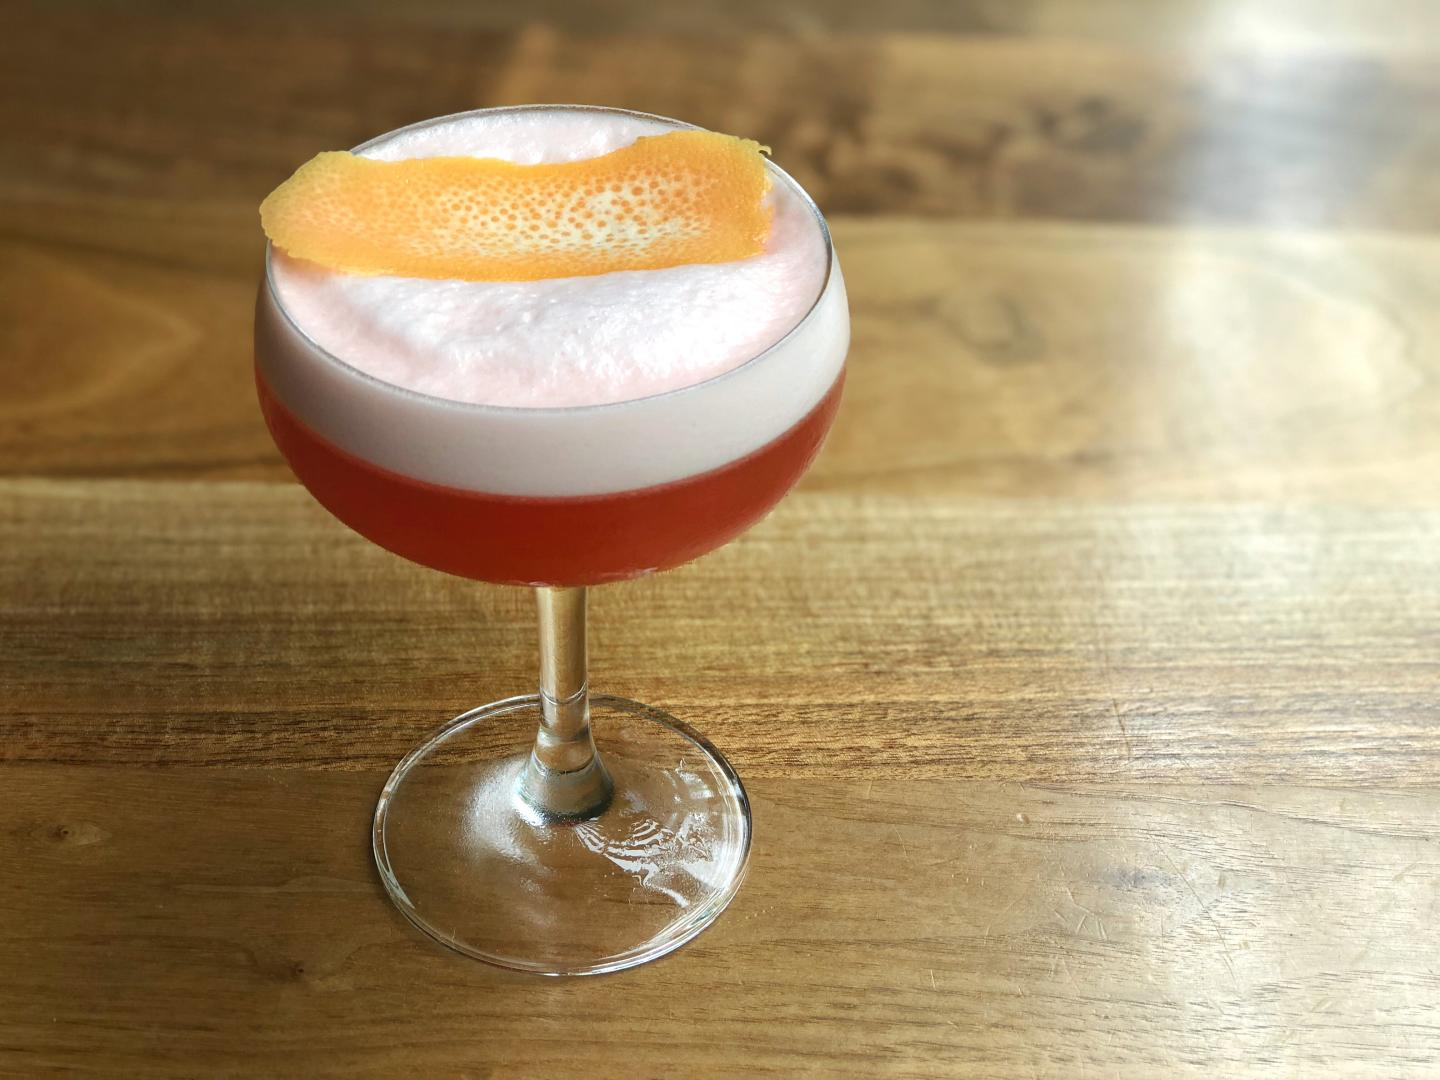 Ema's negroni sour on a wood table